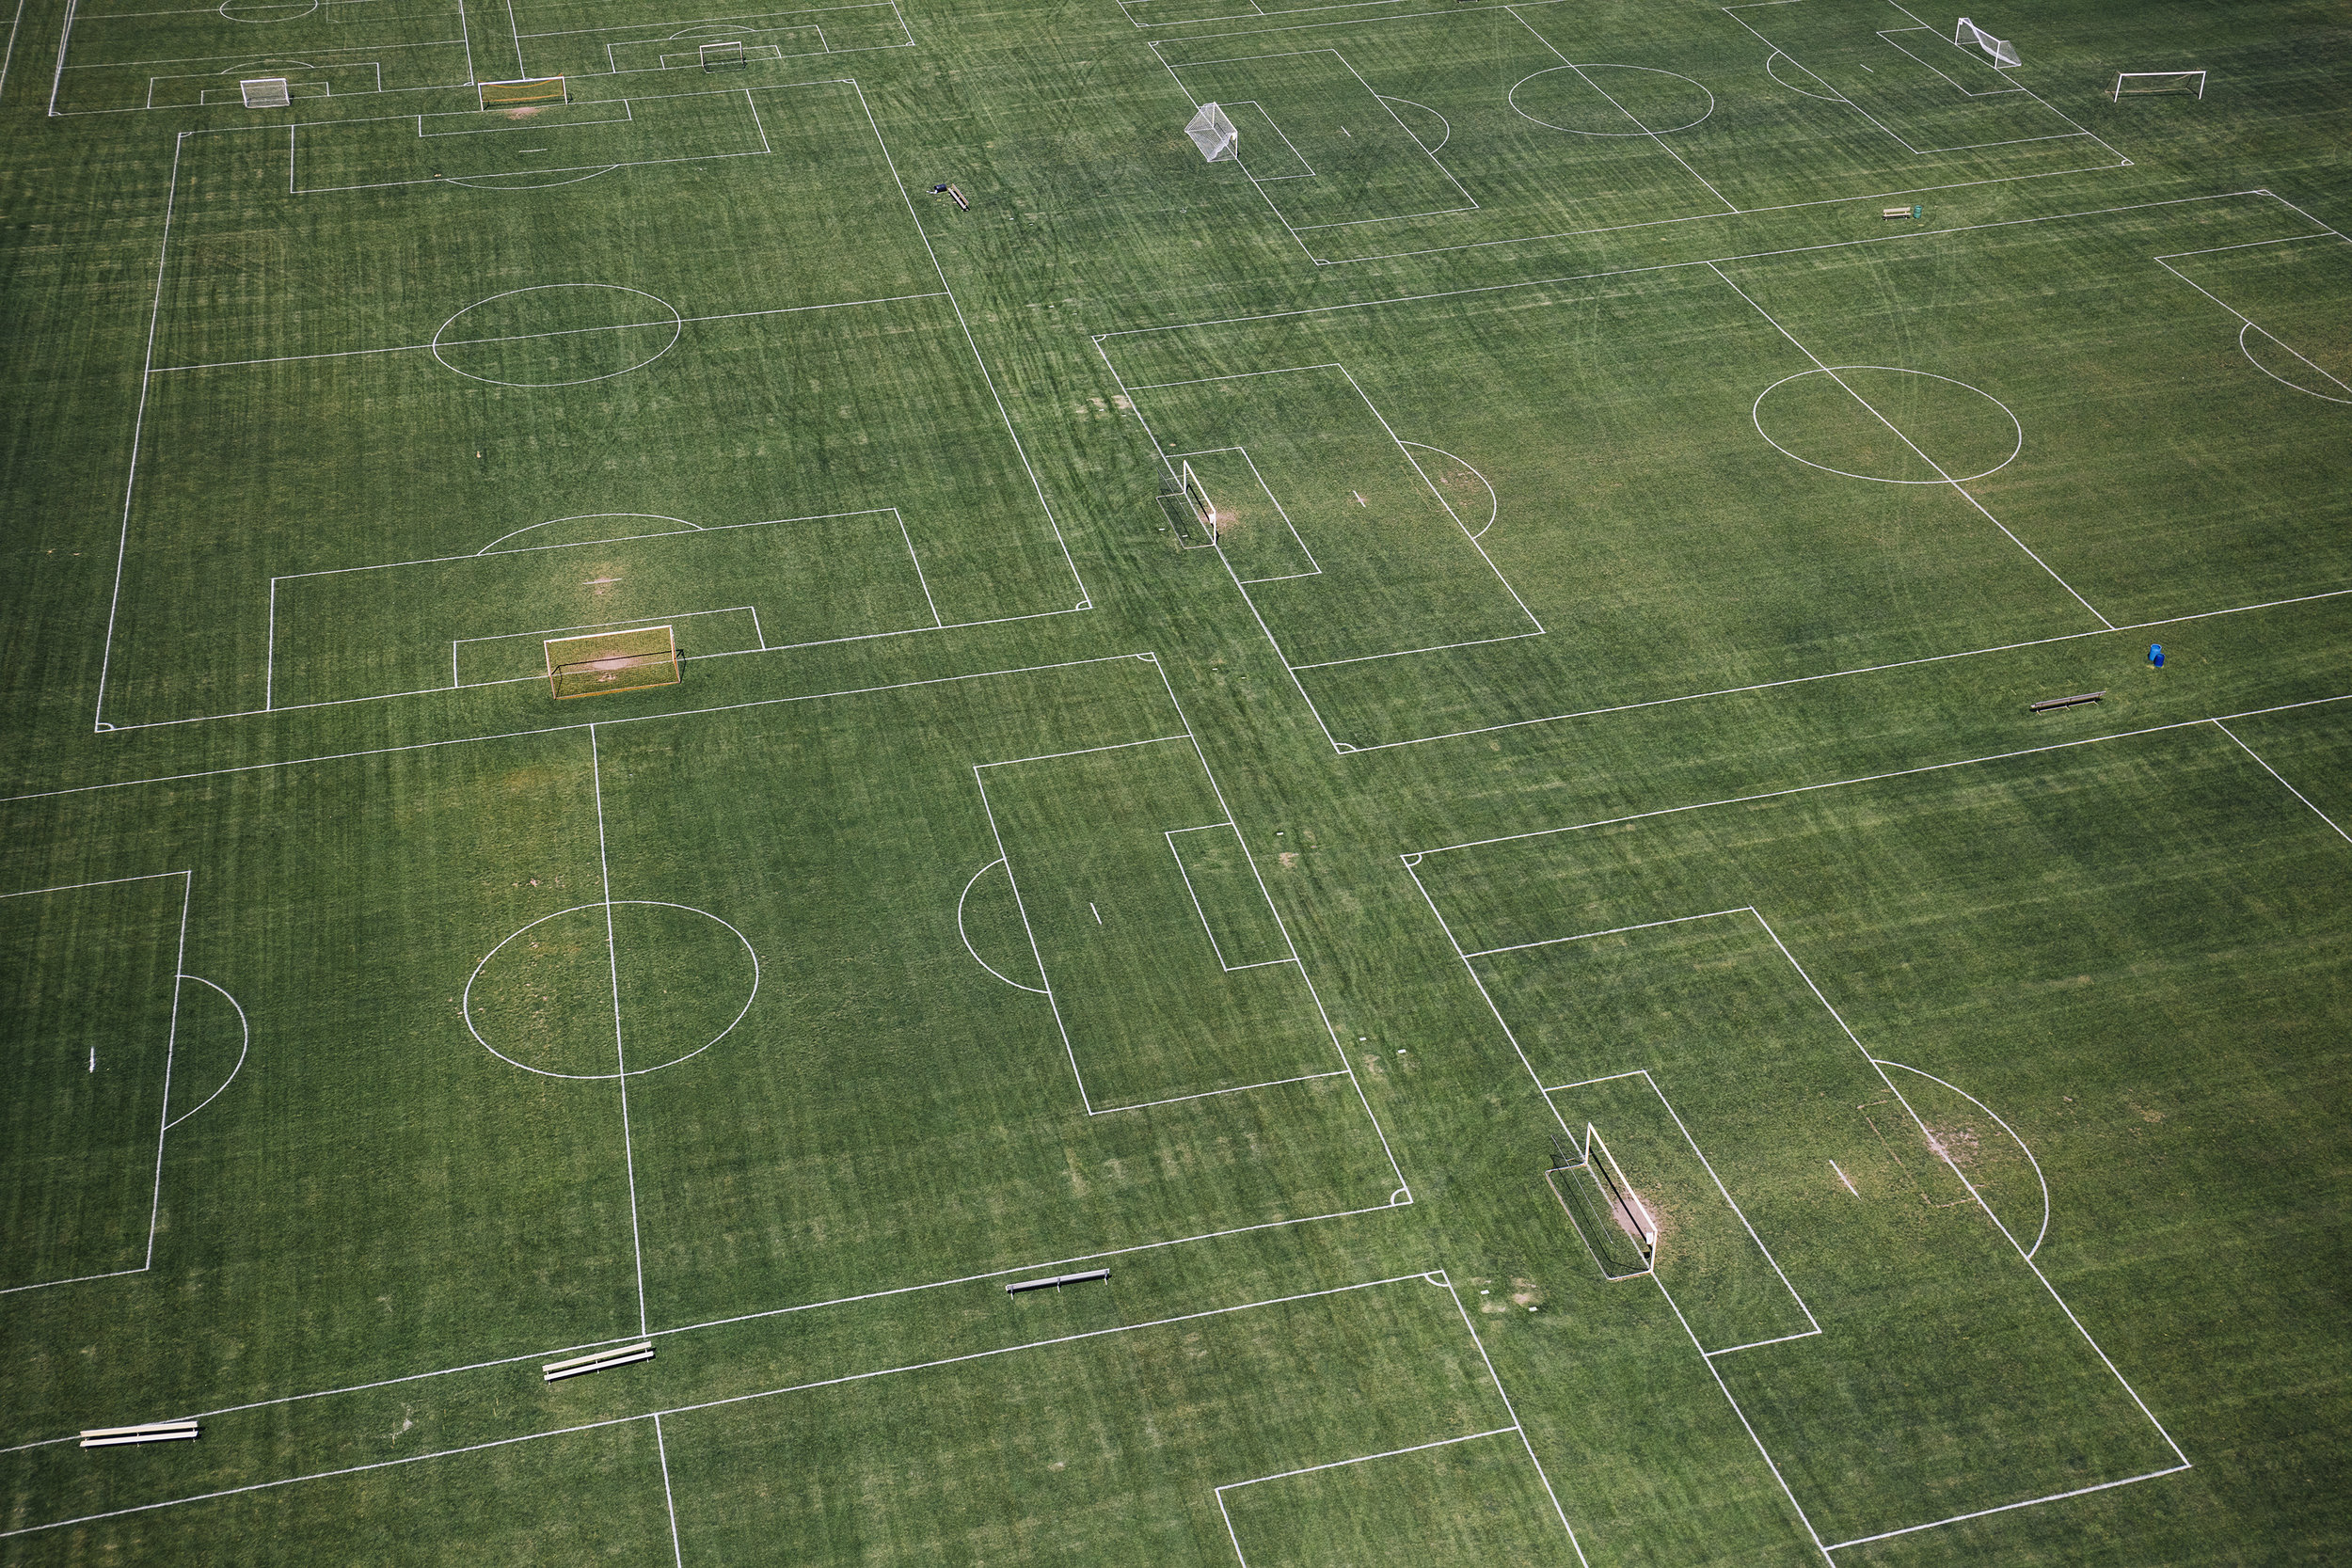 Soccer fields on the outskirts of Columbus's city center.